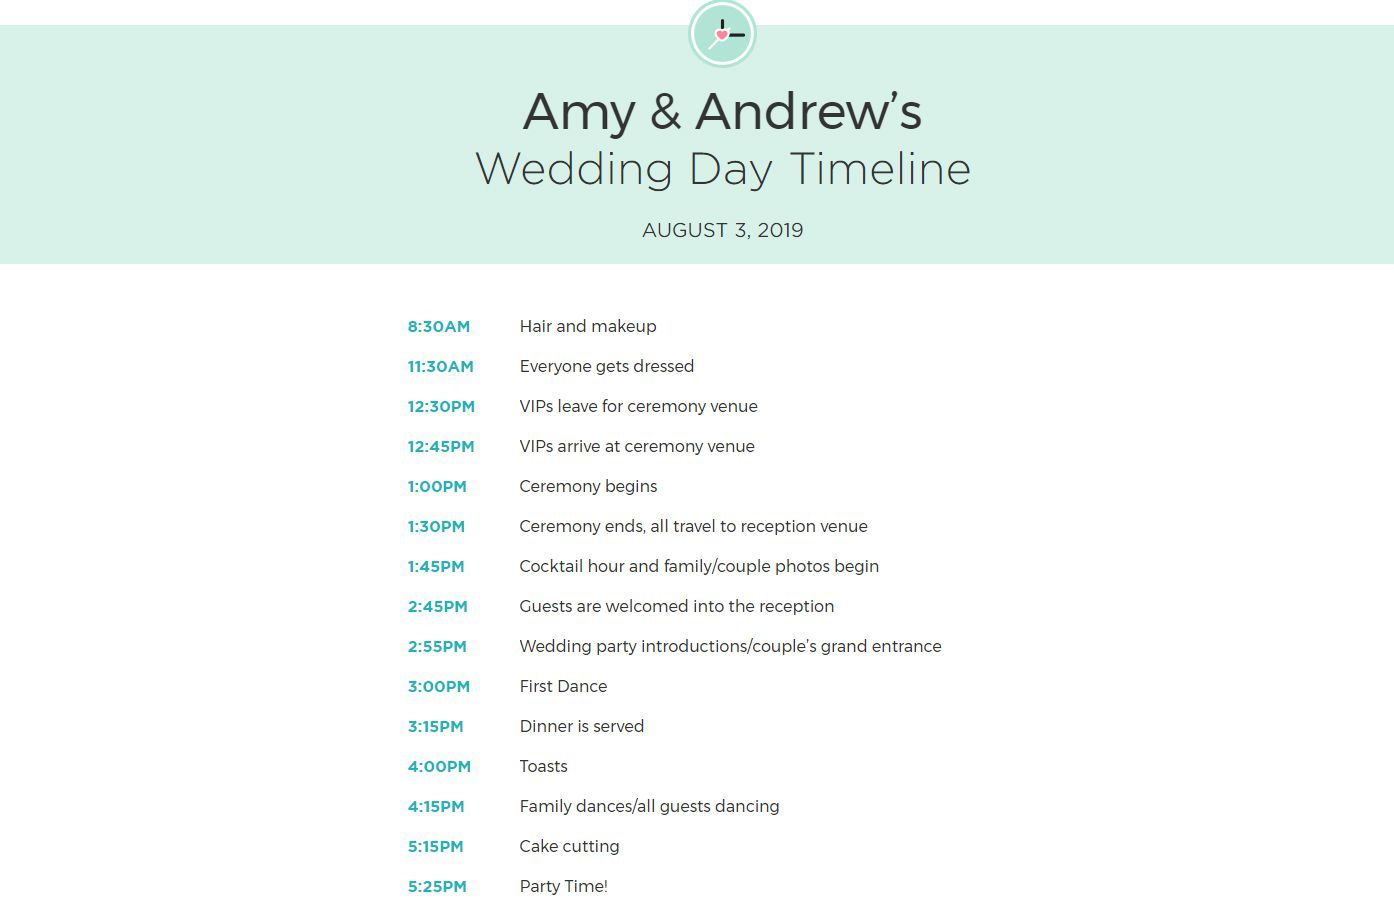 010 Impressive Wedding Timeline For Guest Template Free Photo  DownloadFull